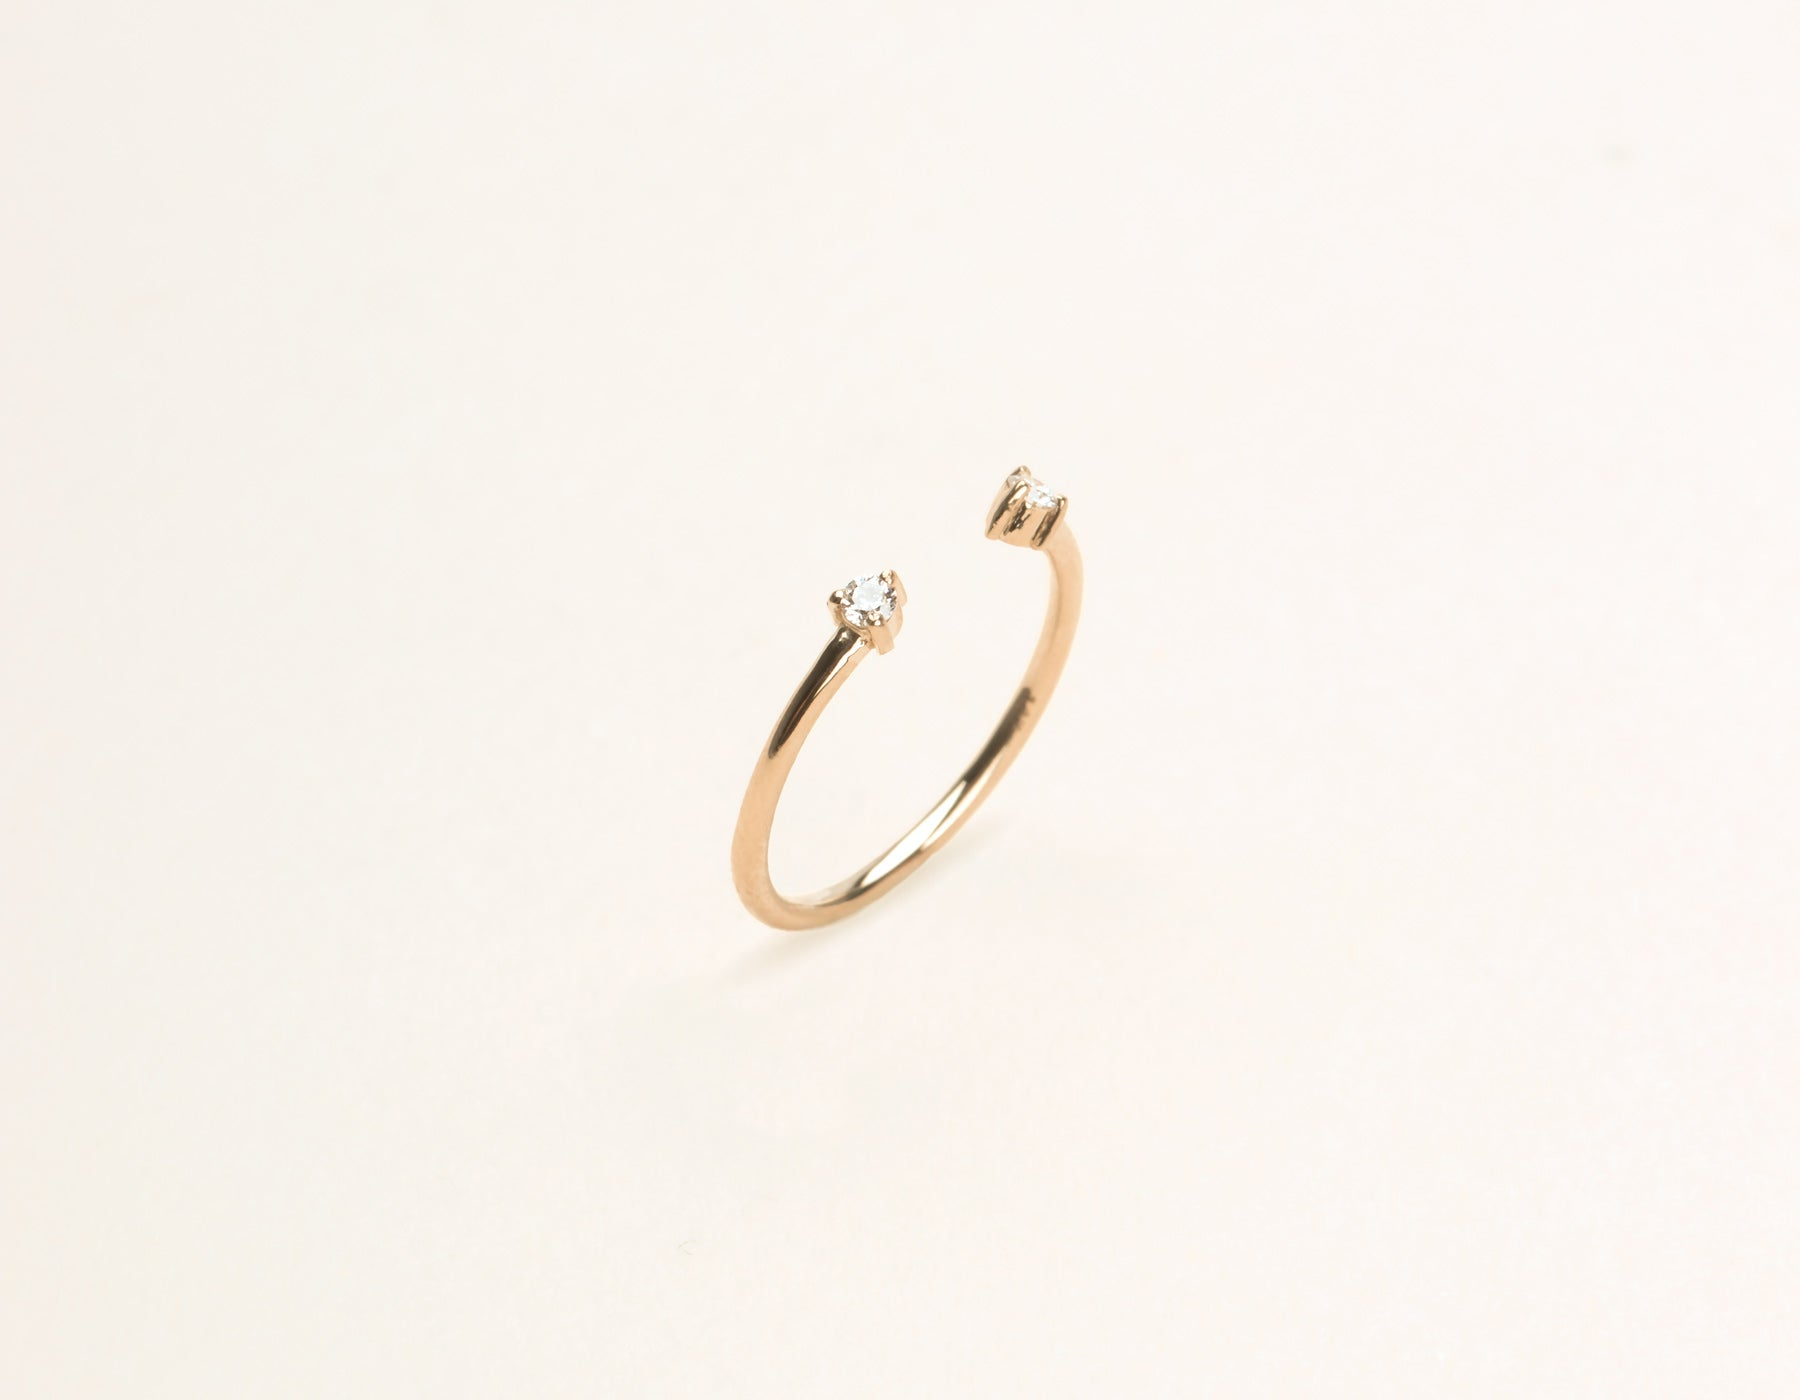 Simple modern 14k solid gold Diamond Dot Cuff stacking ring by Vrai & Oro, 14K Rose Gold